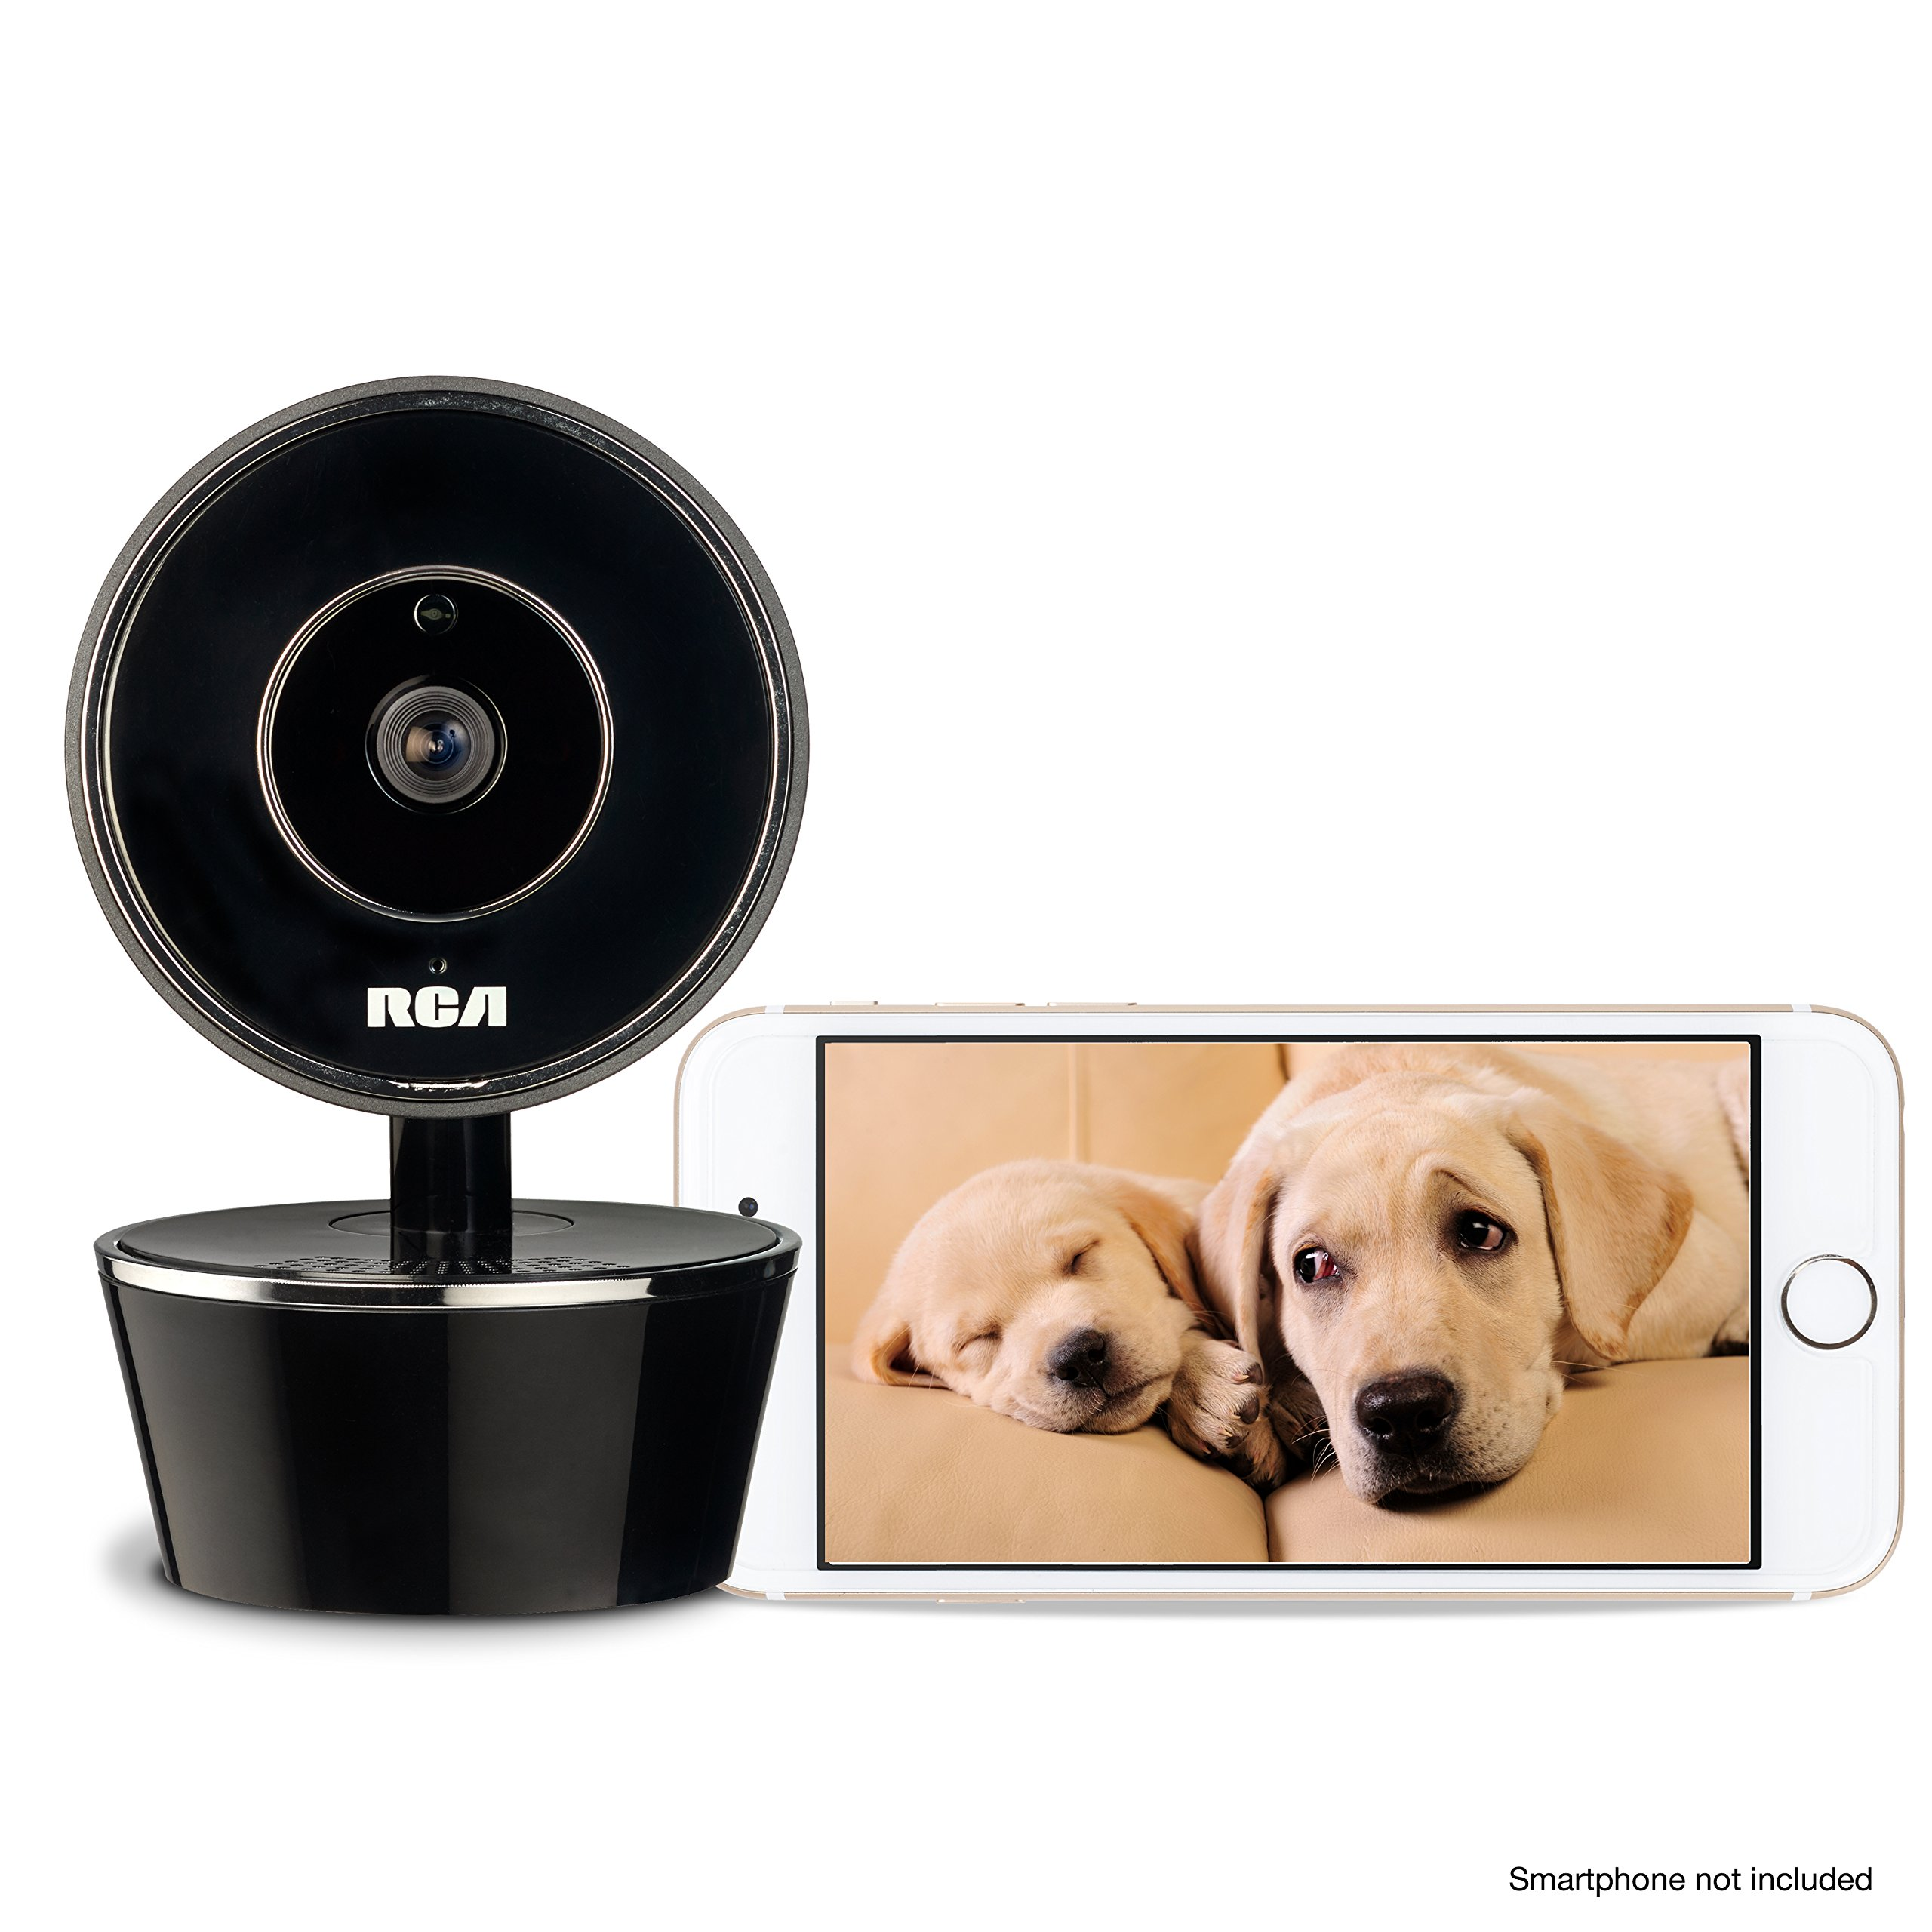 RCA Pet Camera Dog & Cat Parents - Wifi Pet Security Camera HD Video, 2 Way Audio, Night Vision, Motion & Sound Alerts & Phone App to Monitor & Talk to Your Pets (Pet Camera)